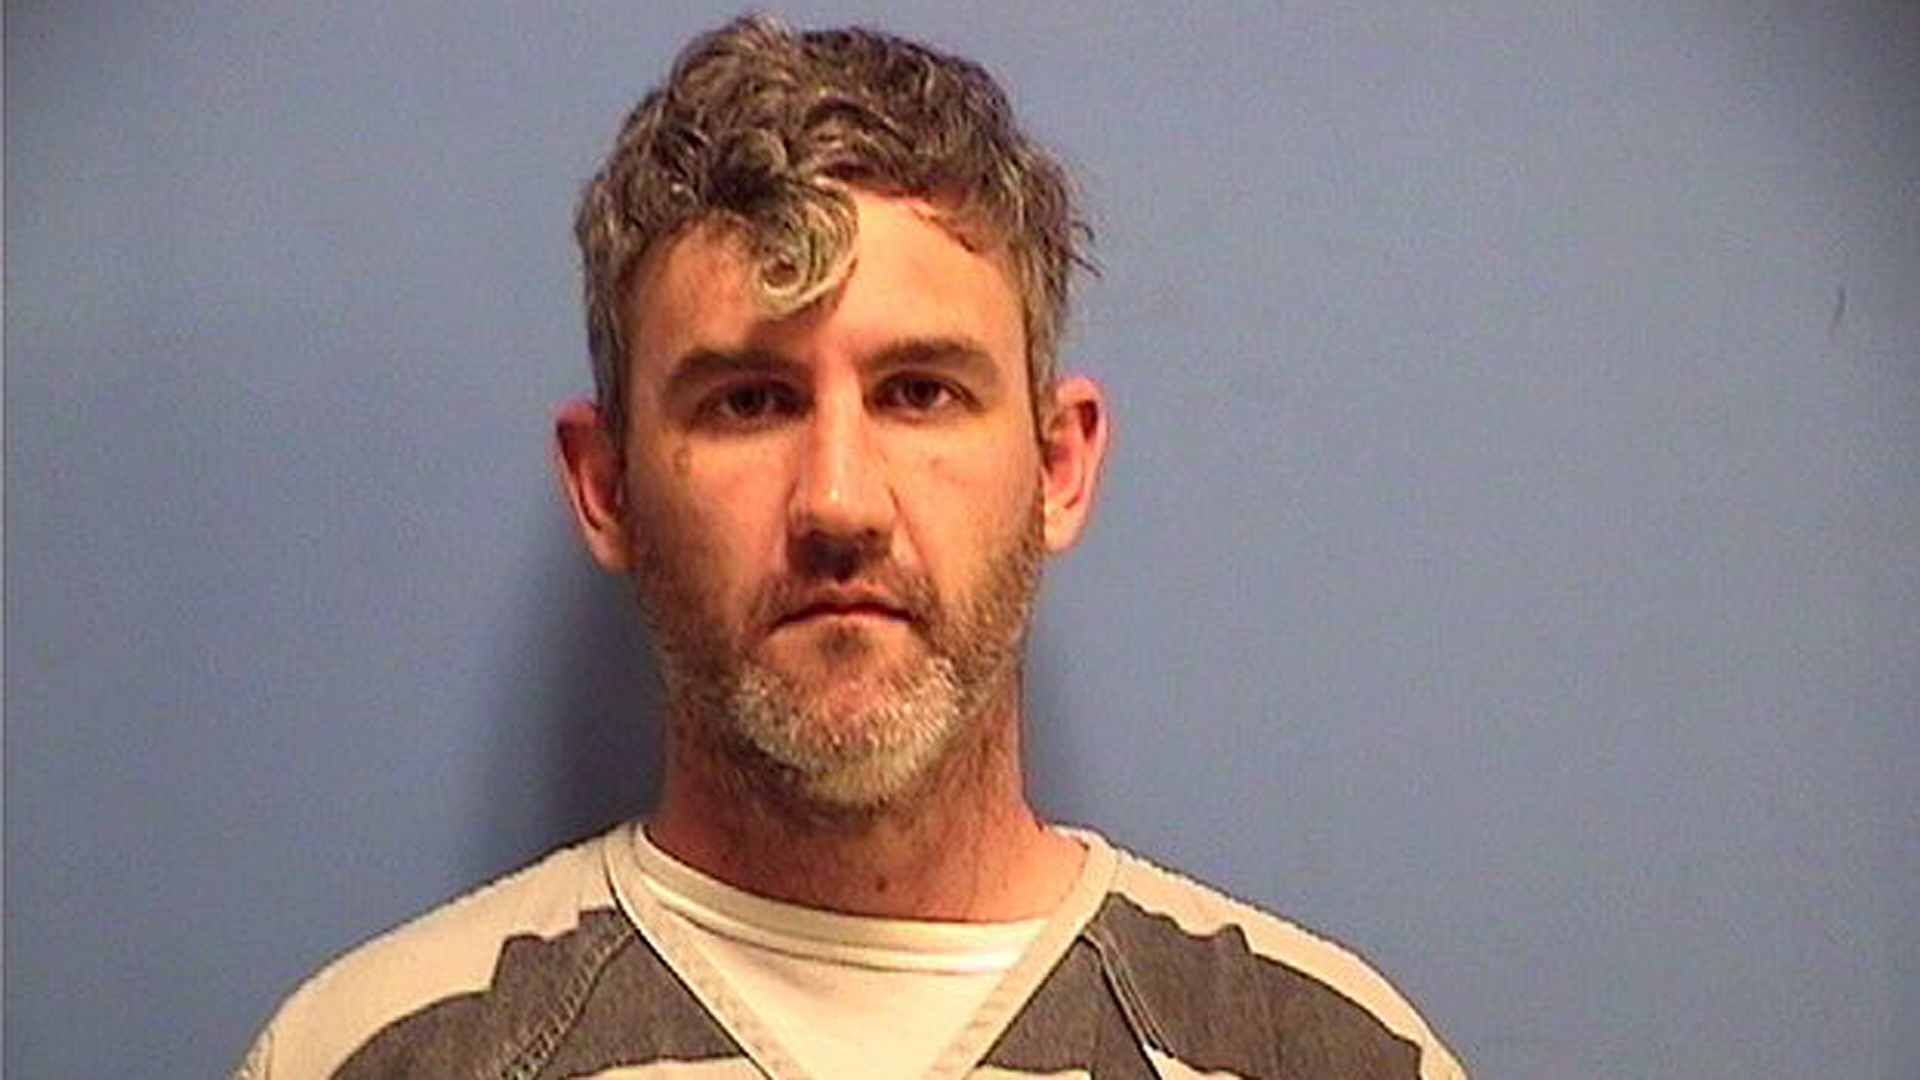 Ian Bagley is seen in a photo released by the St. Tammany Parish Sheriff's Office.